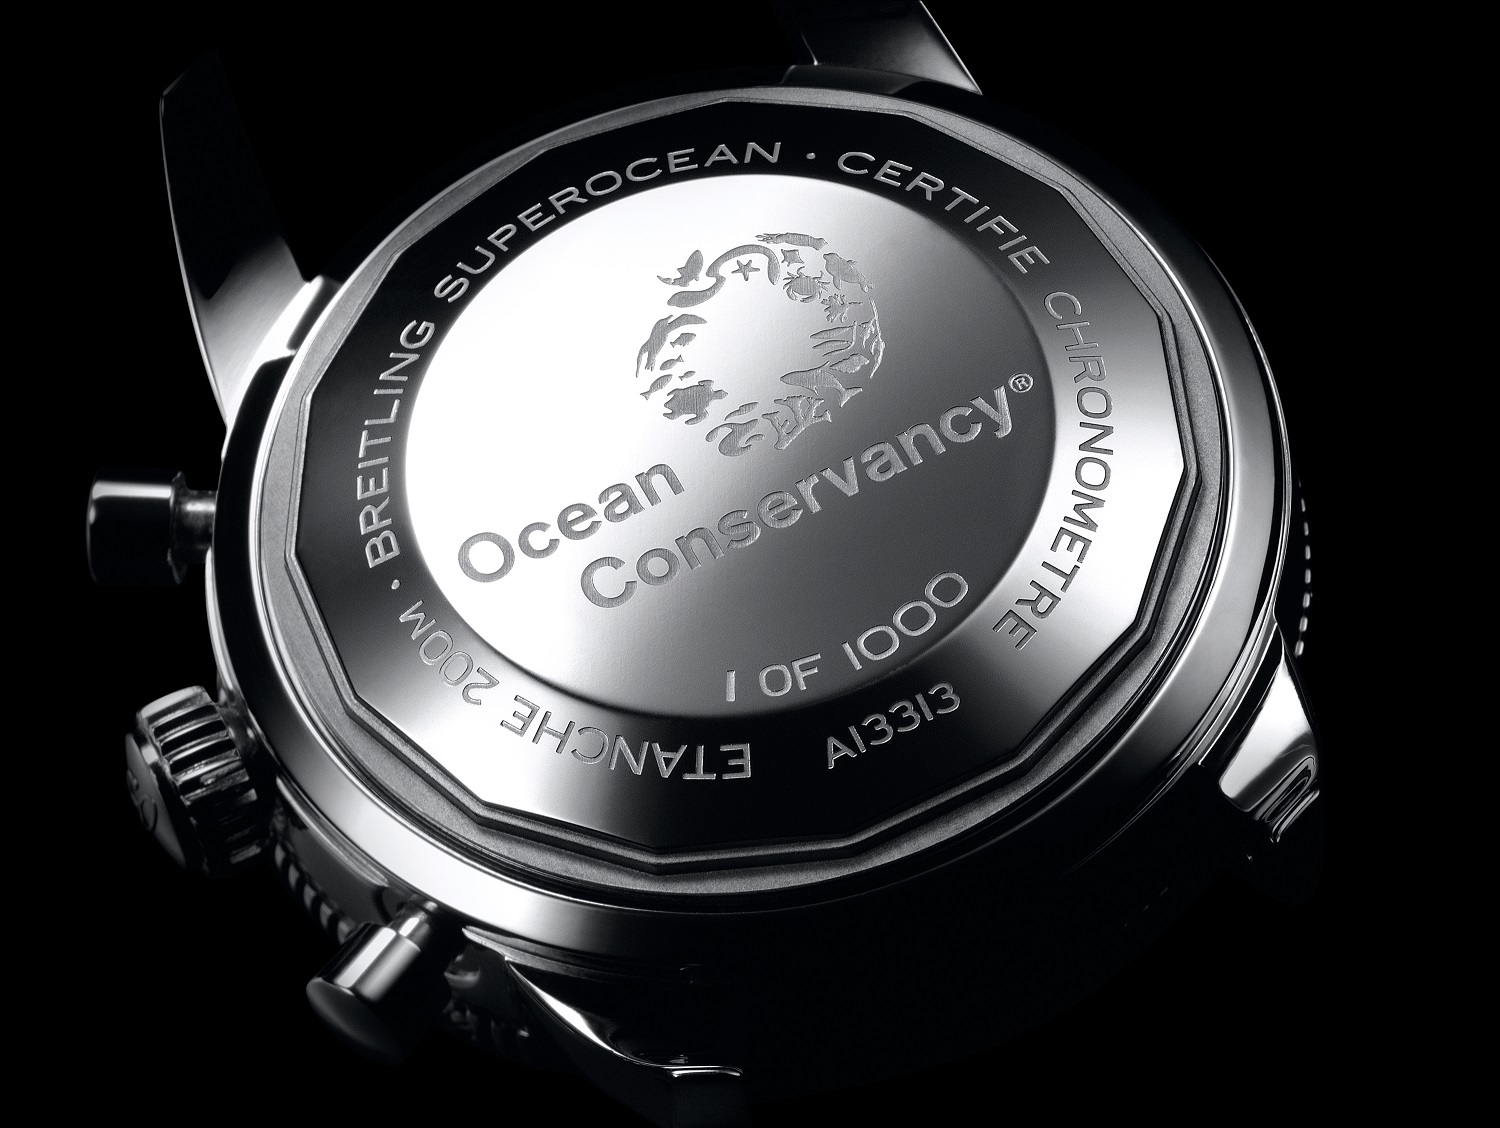 There are 1000 models of the Superocean Heritage Ocean Conservancy Limited Edition